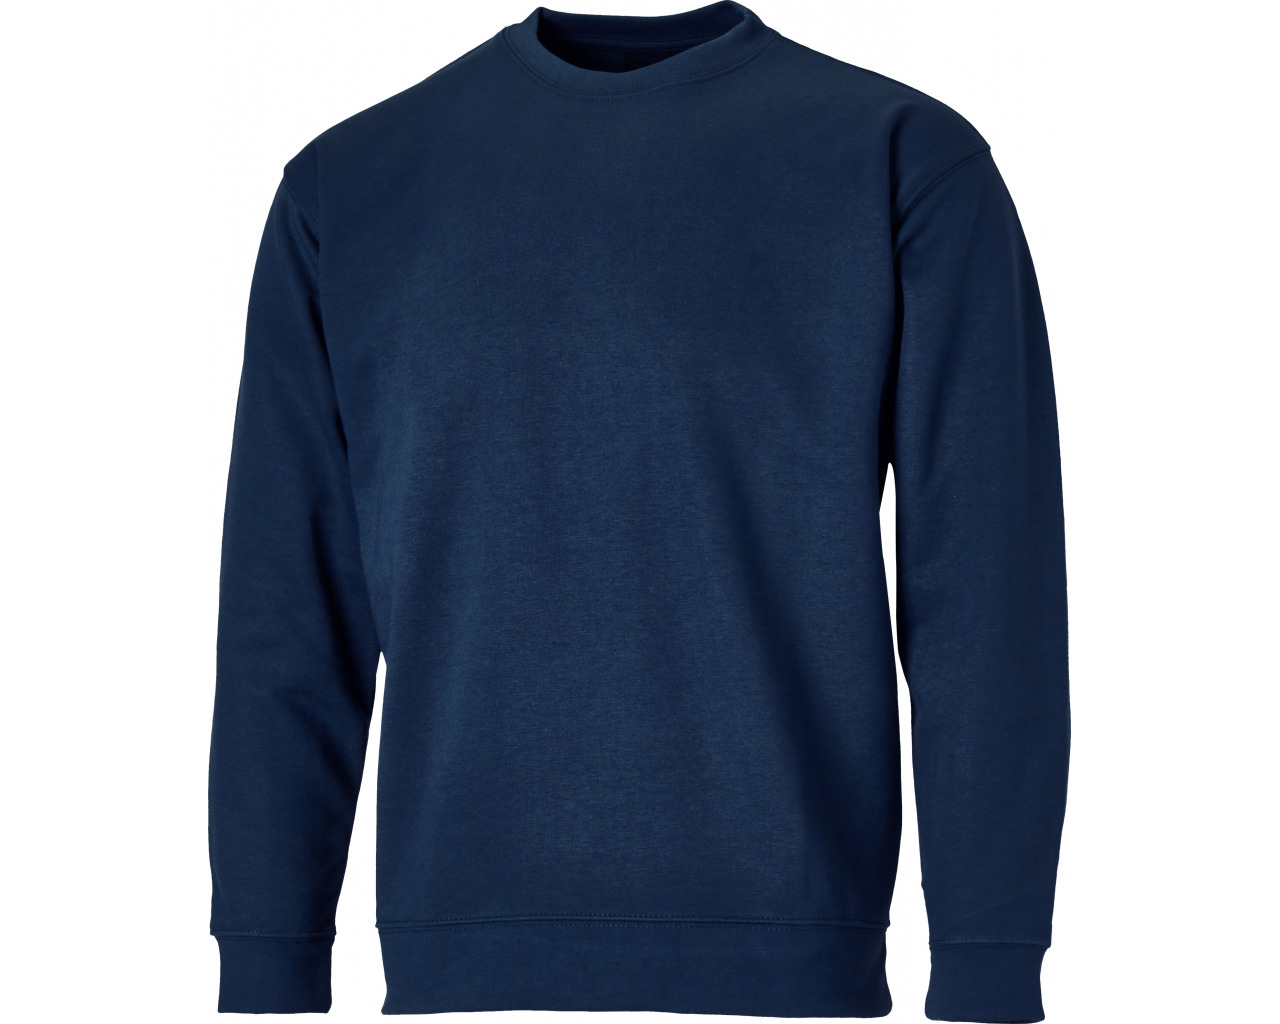 Sweatshirt Crew Neck Navy Sh11125 Dickies